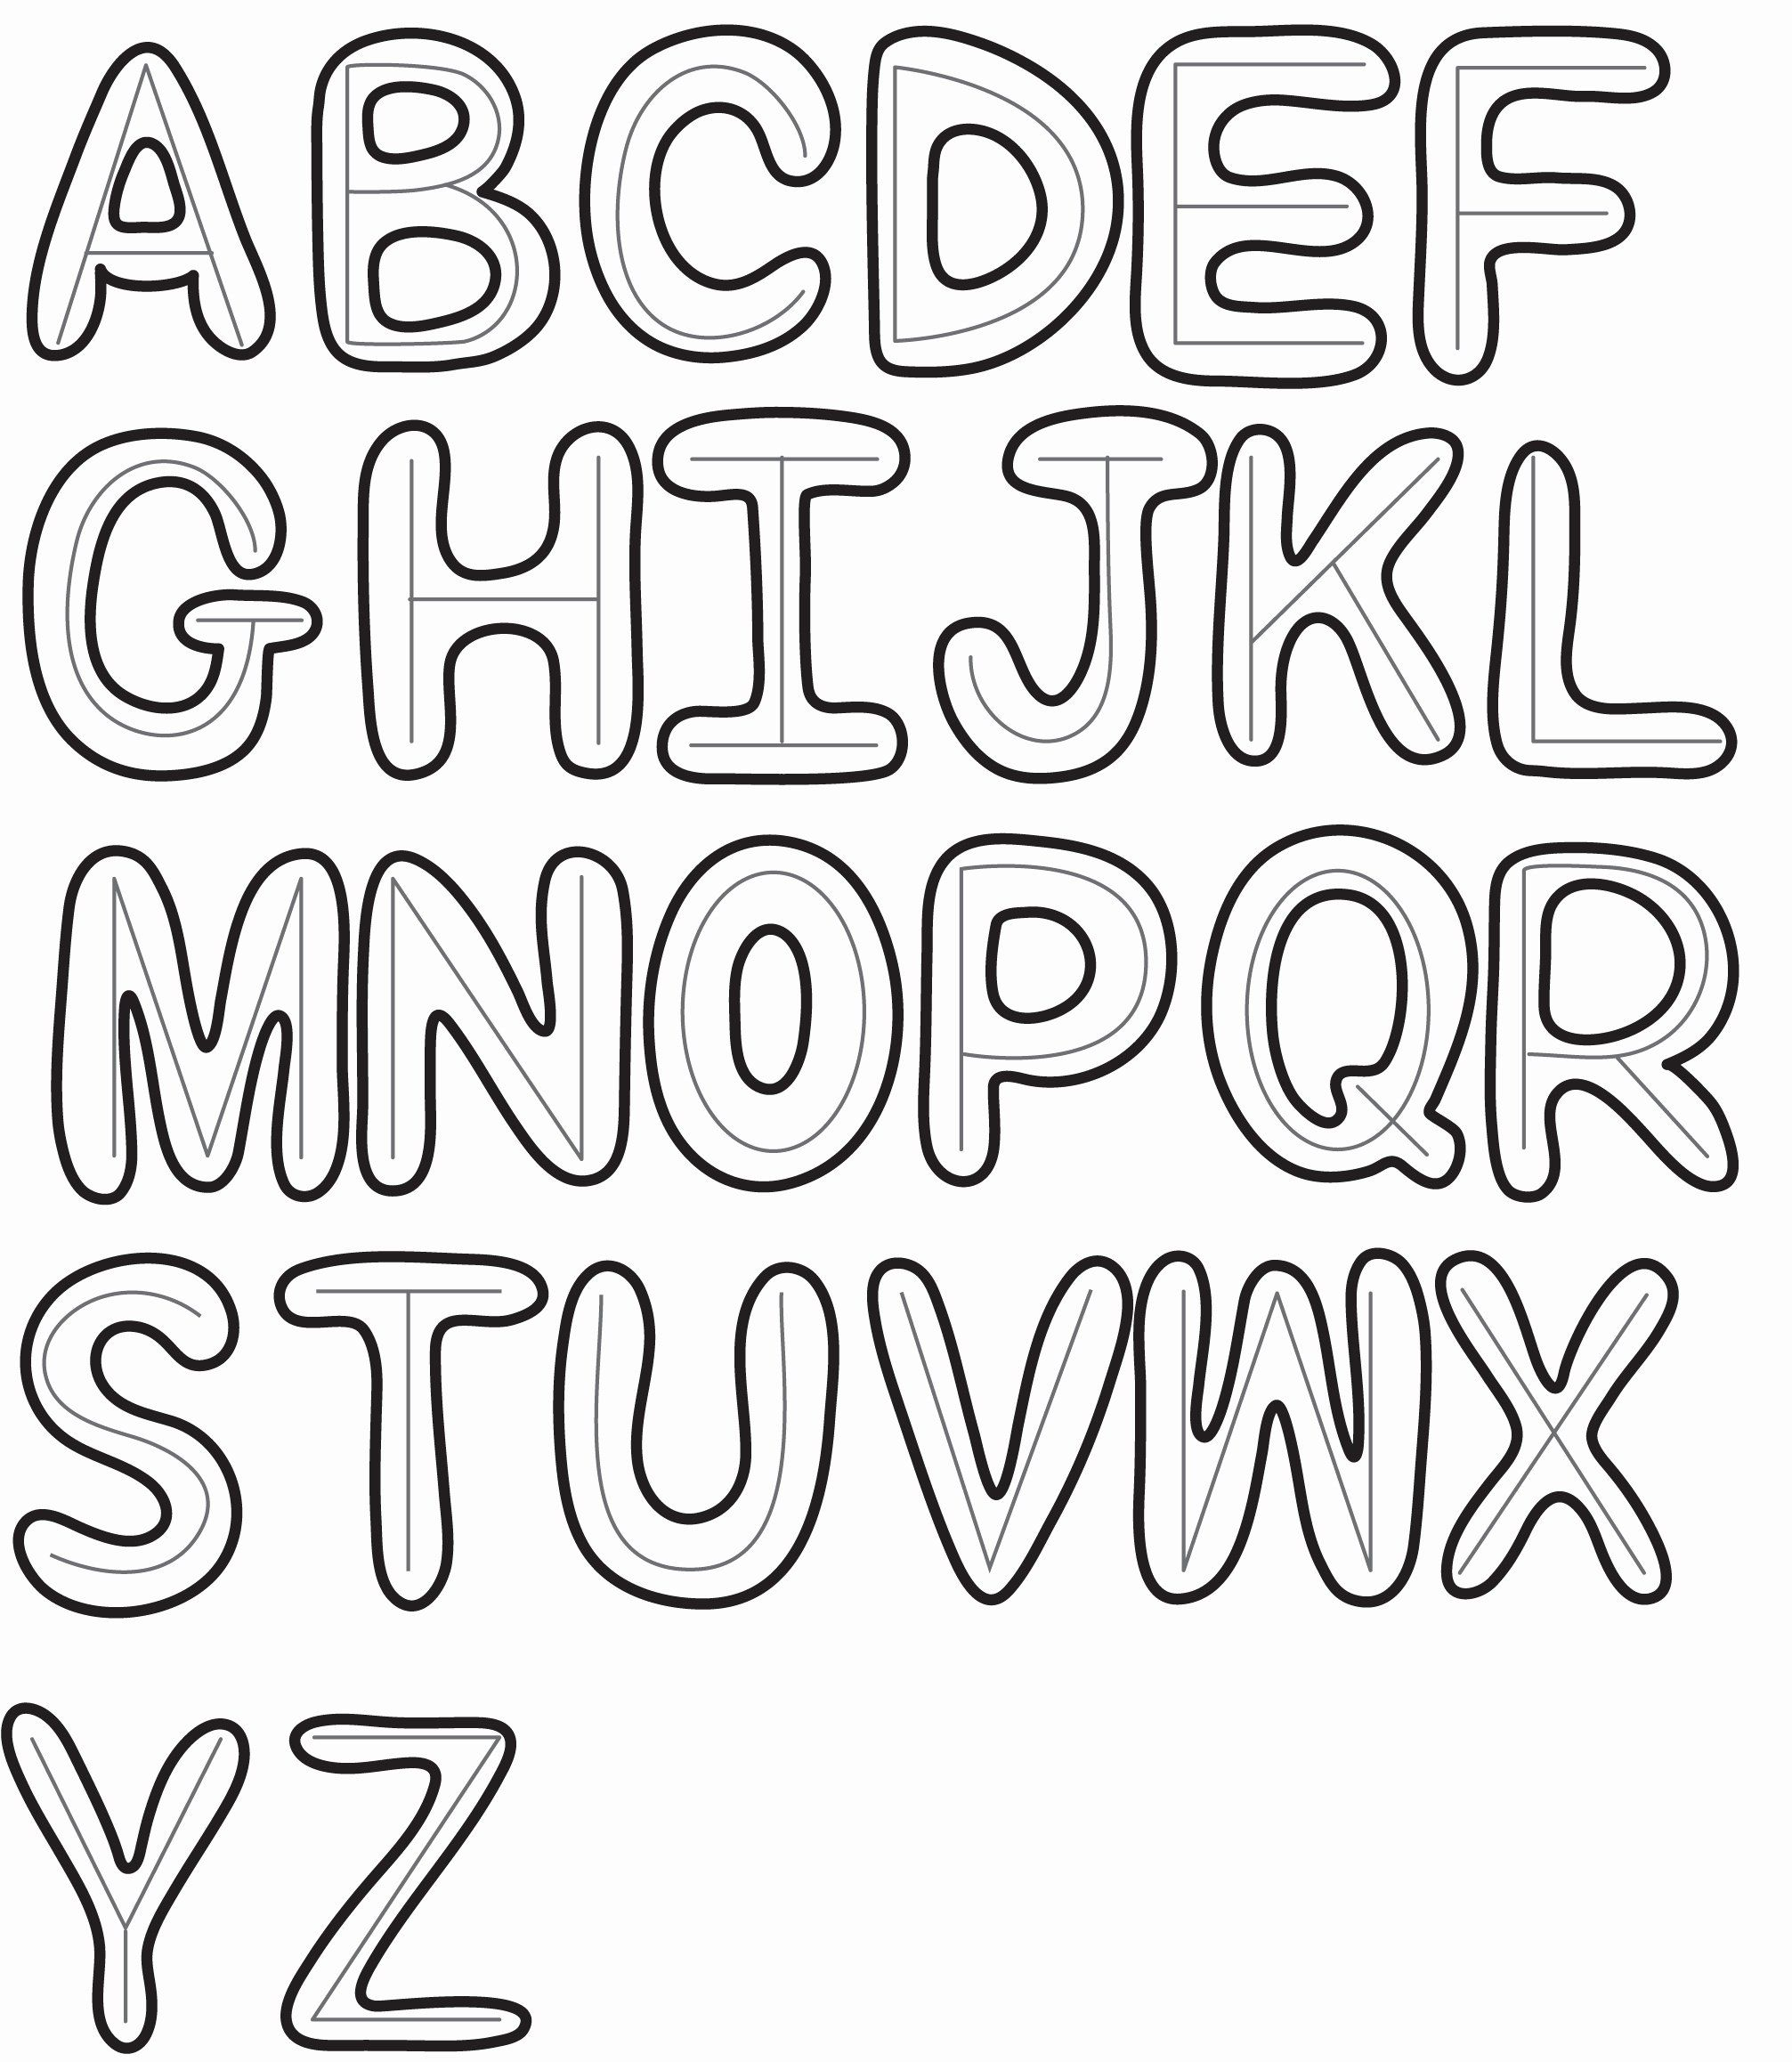 Alphabet Coloring Sheets A Z Pdf Best Of Bubble Letters Alphabet Graffiti A Z 3d Lowercase Letter Bubble Drawing Bubble Letter Fonts Lettering Alphabet